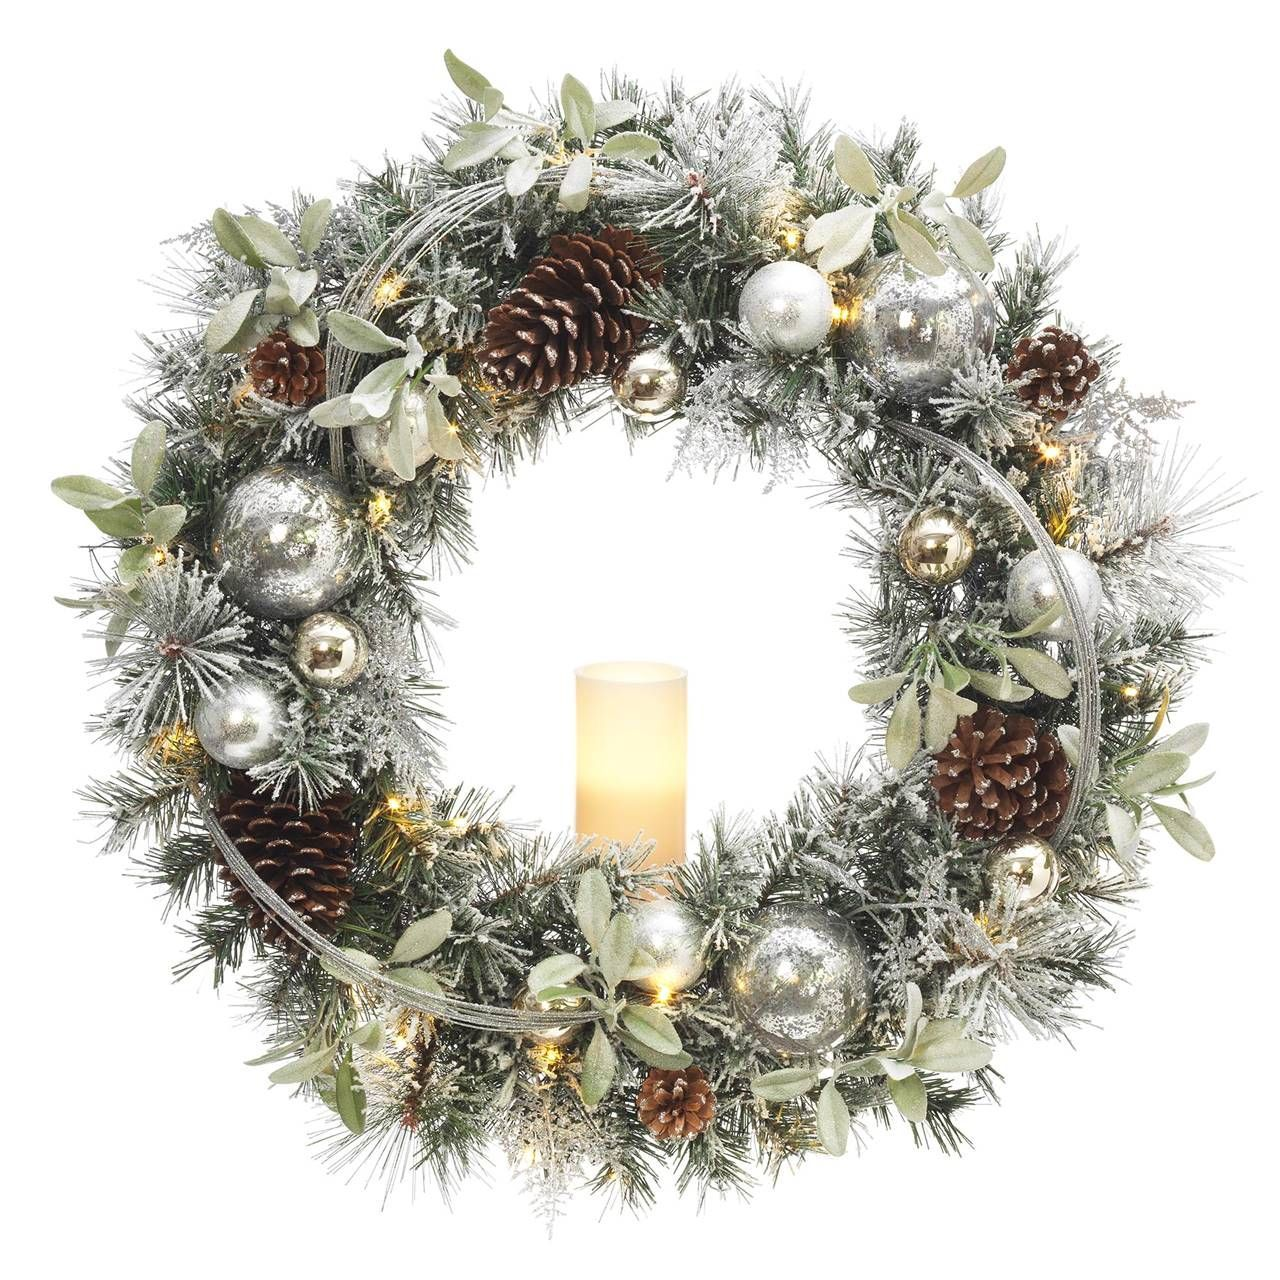 60 Festive Christmas Wreaths To Welcome The Holiday Season   Battery ...